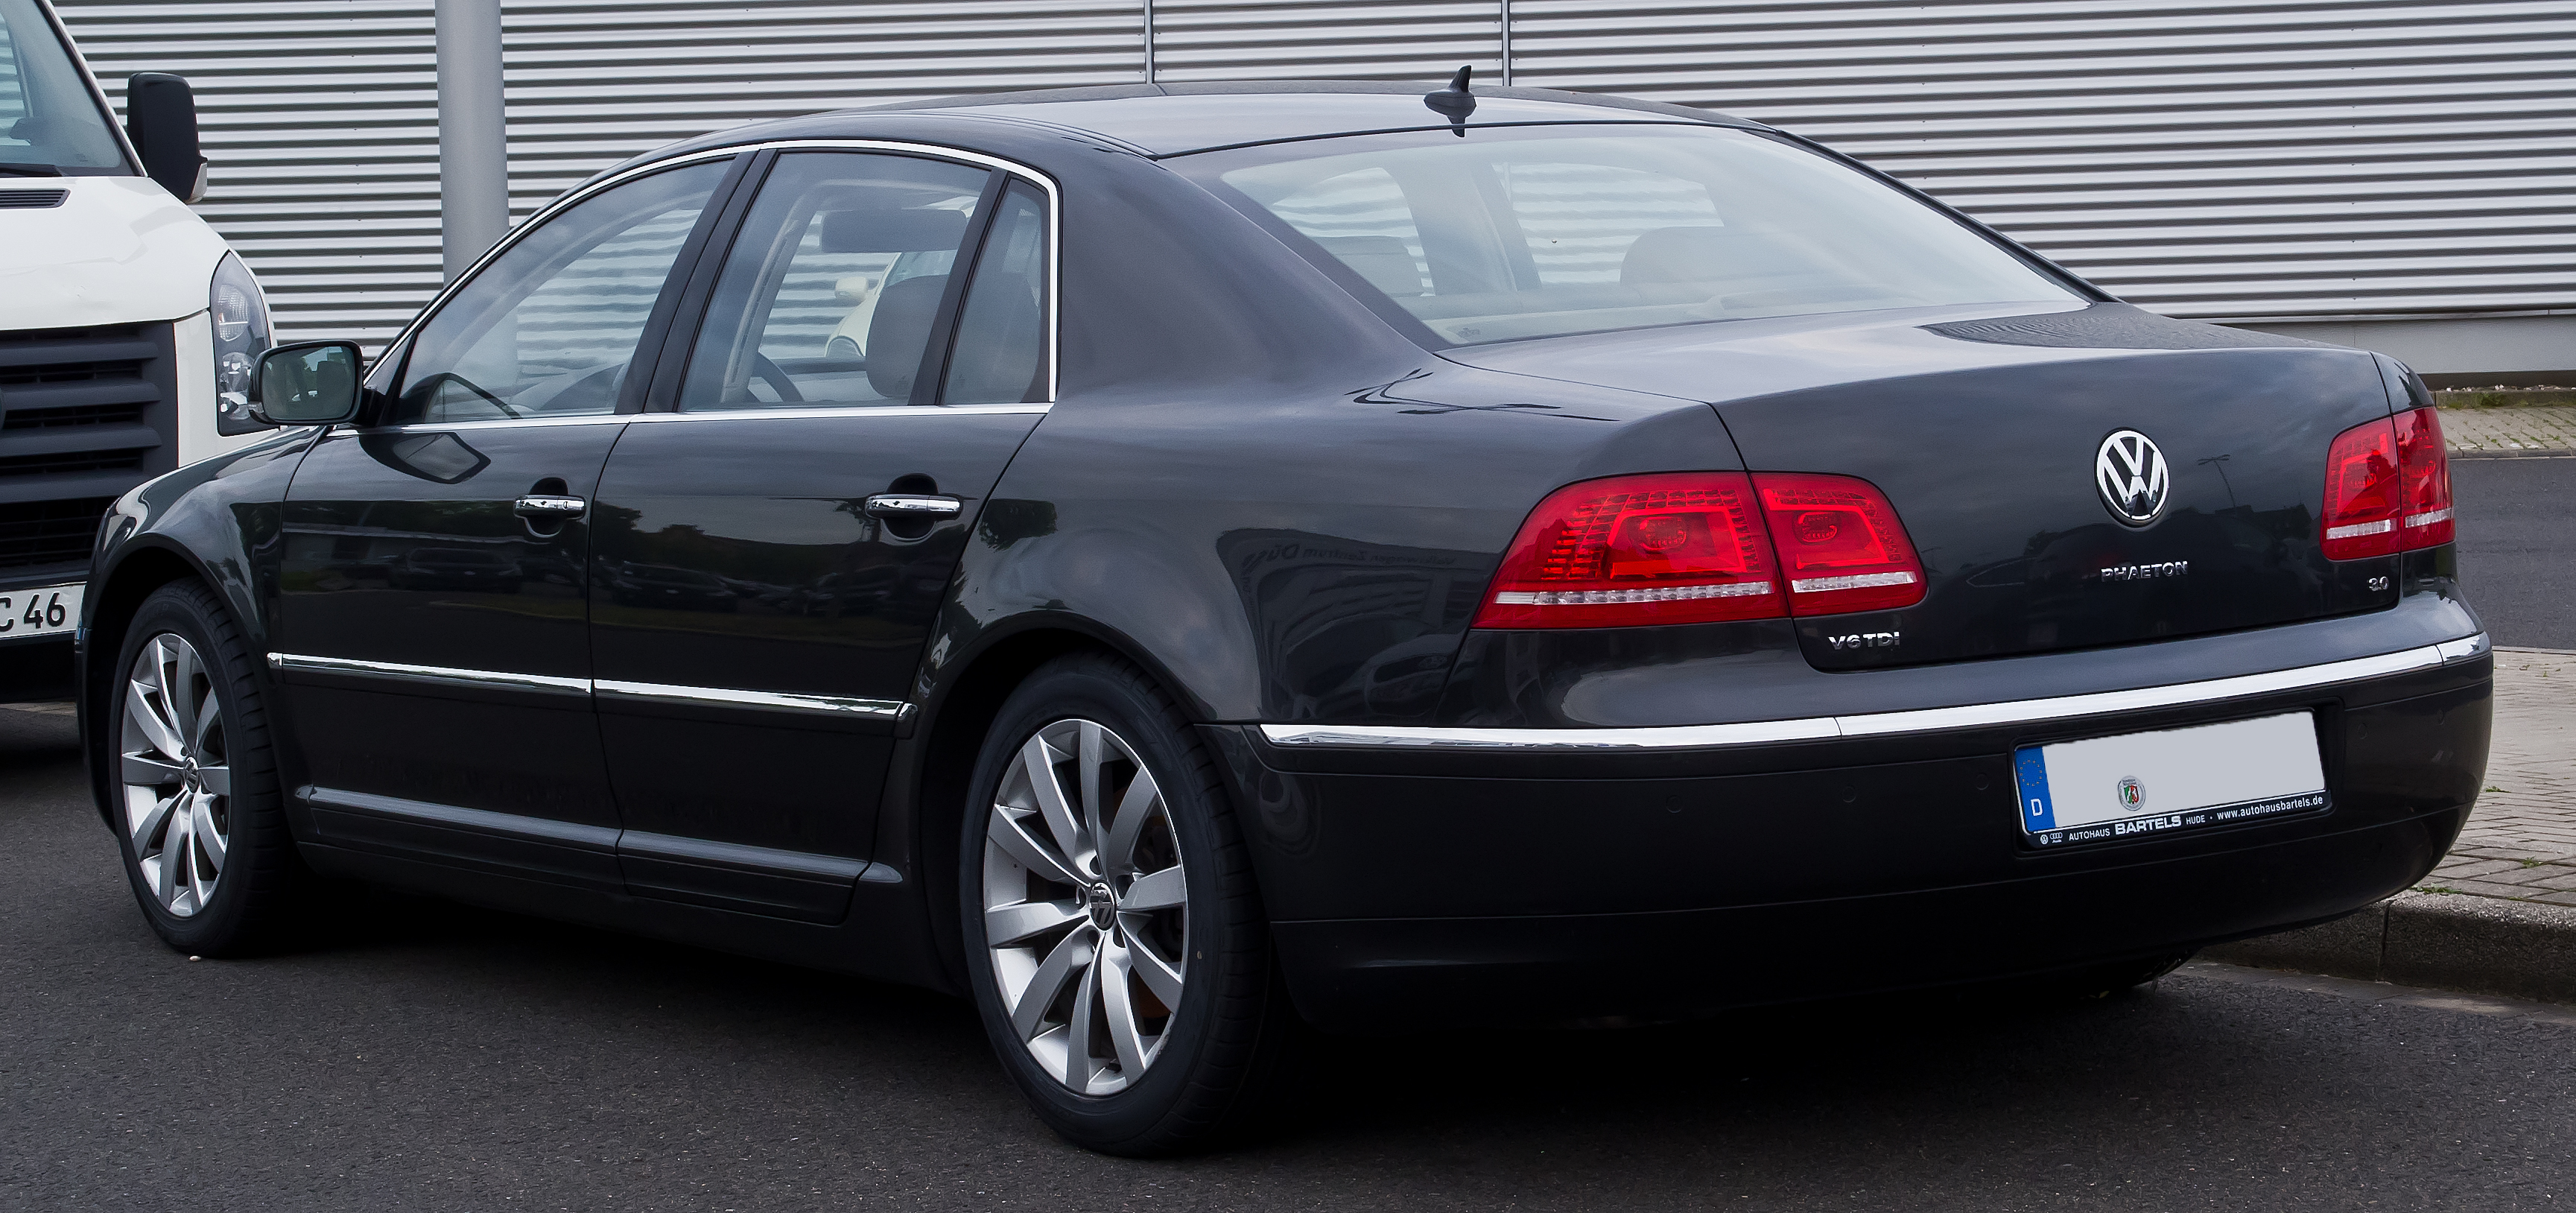 volkswagen phaeton. Black Bedroom Furniture Sets. Home Design Ideas